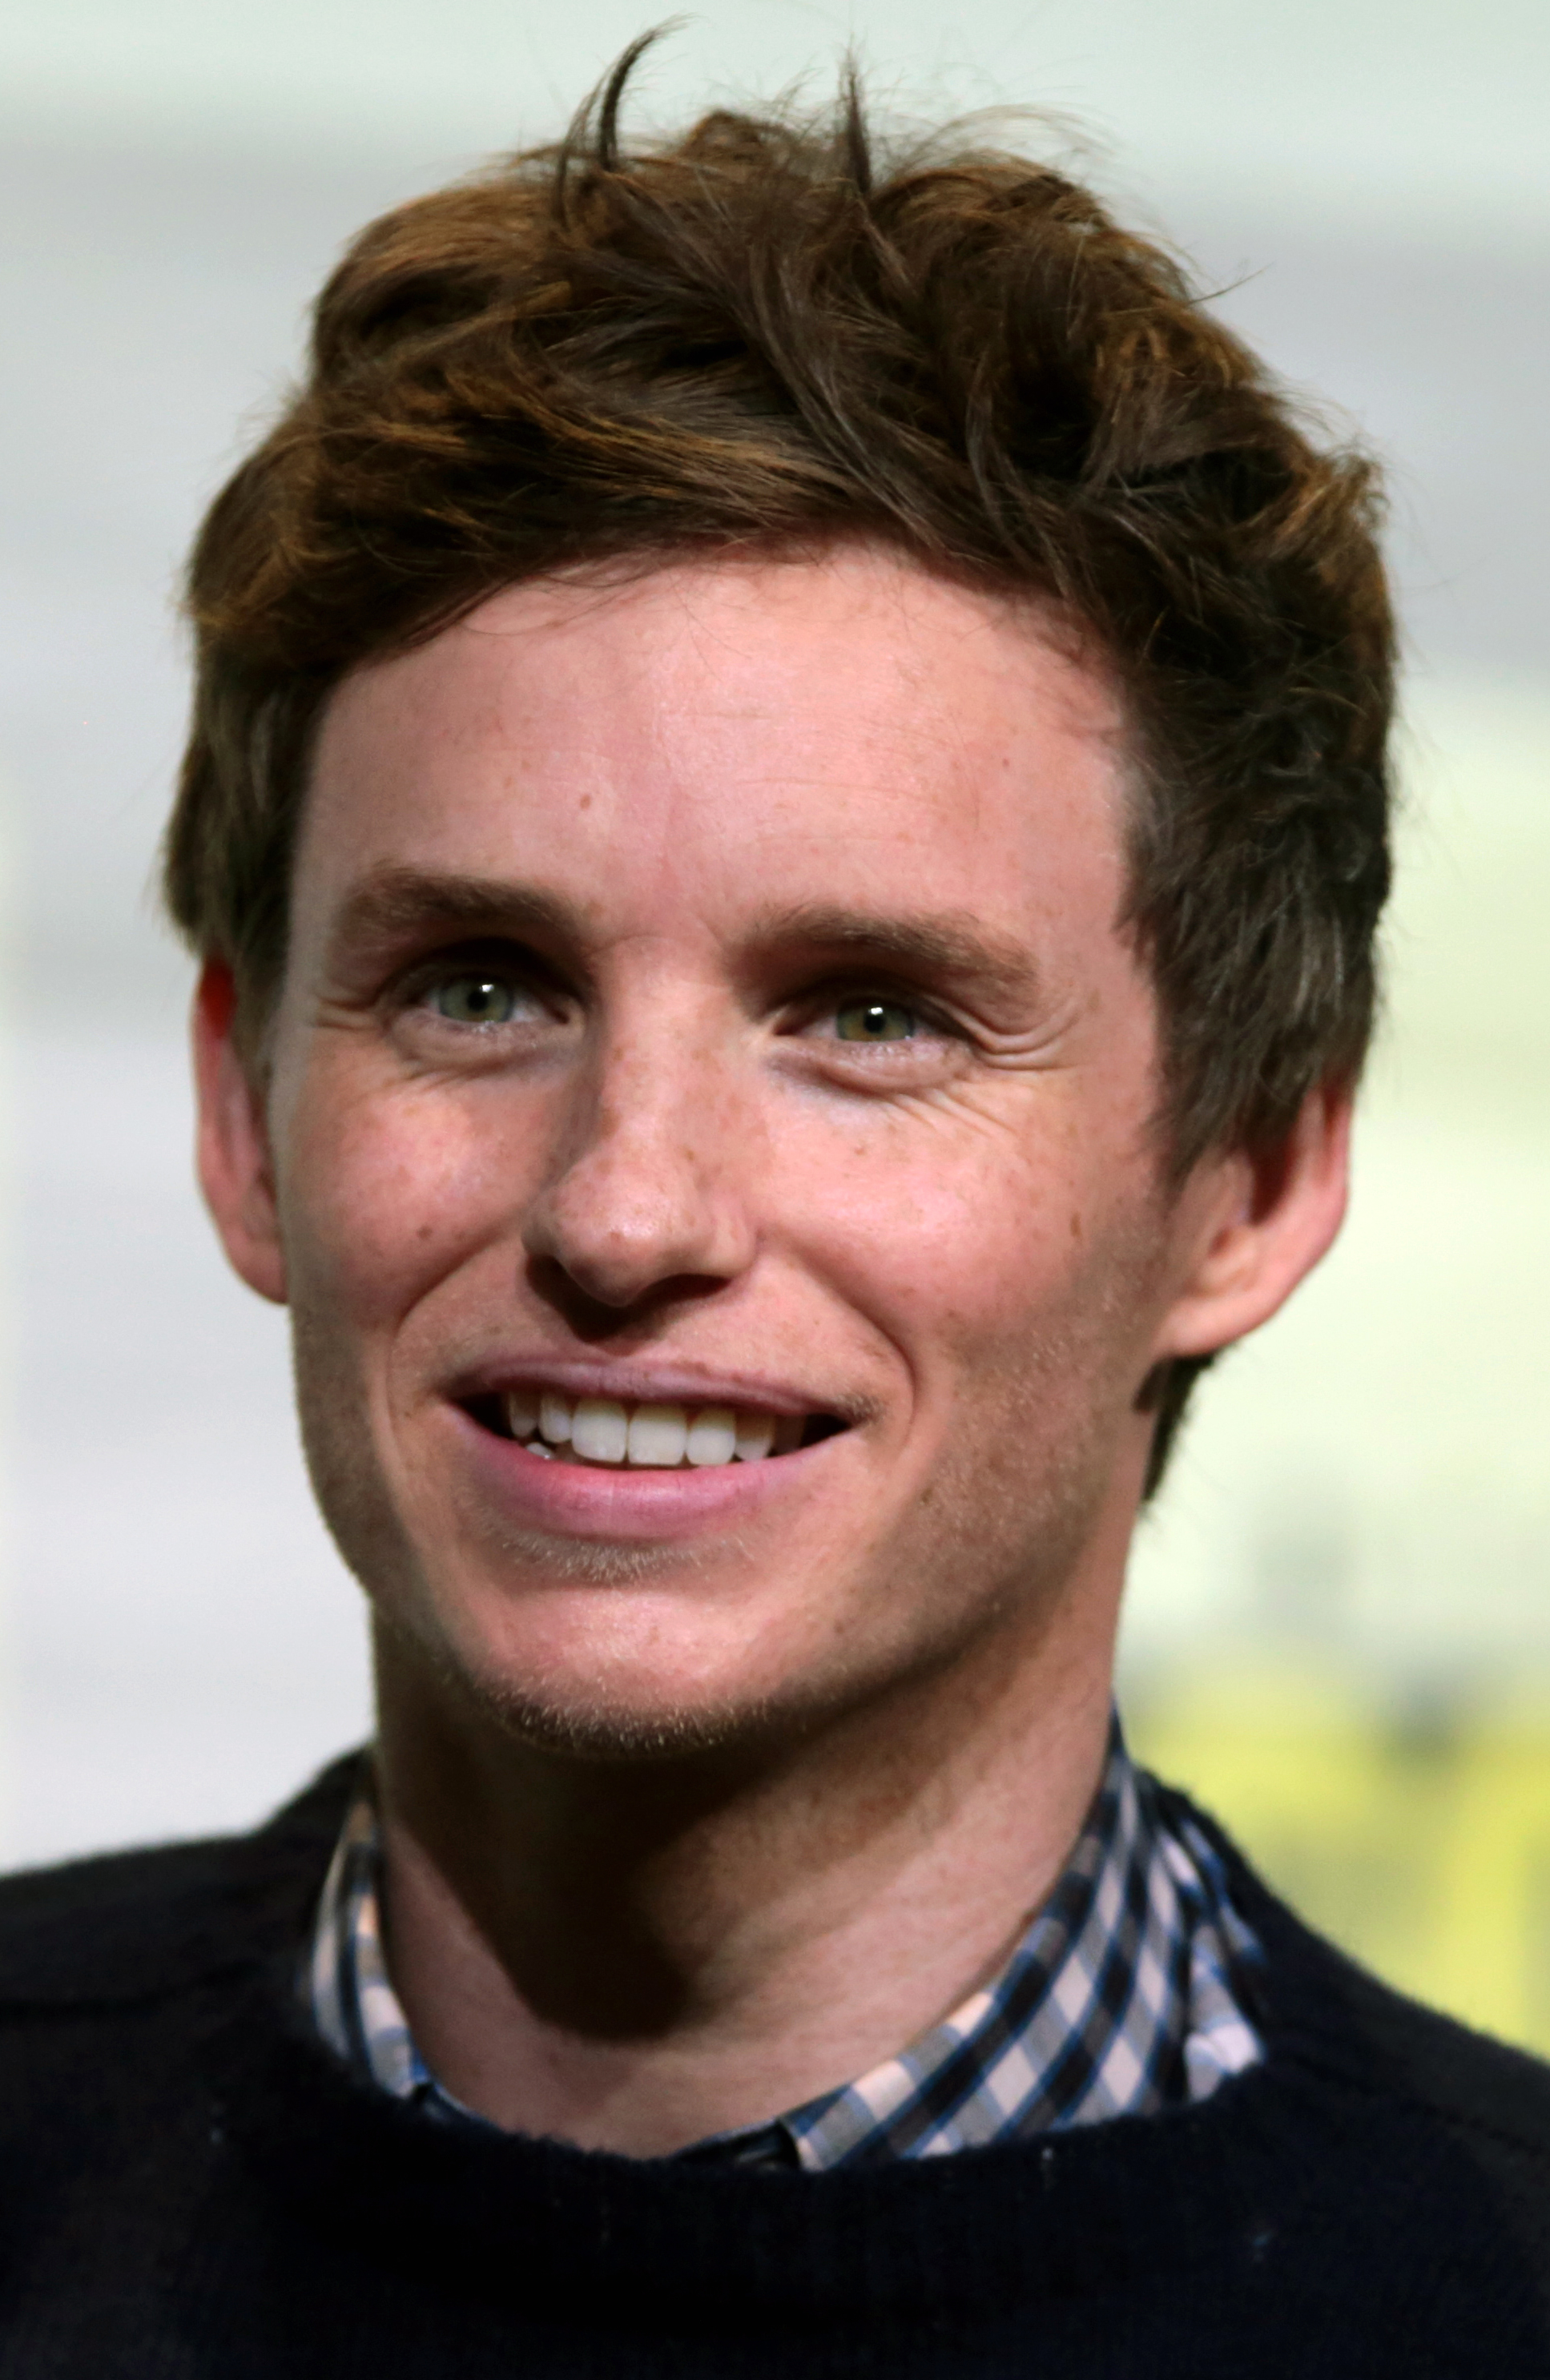 les-miserables-eddie-redmayne-by-gage-skidmore